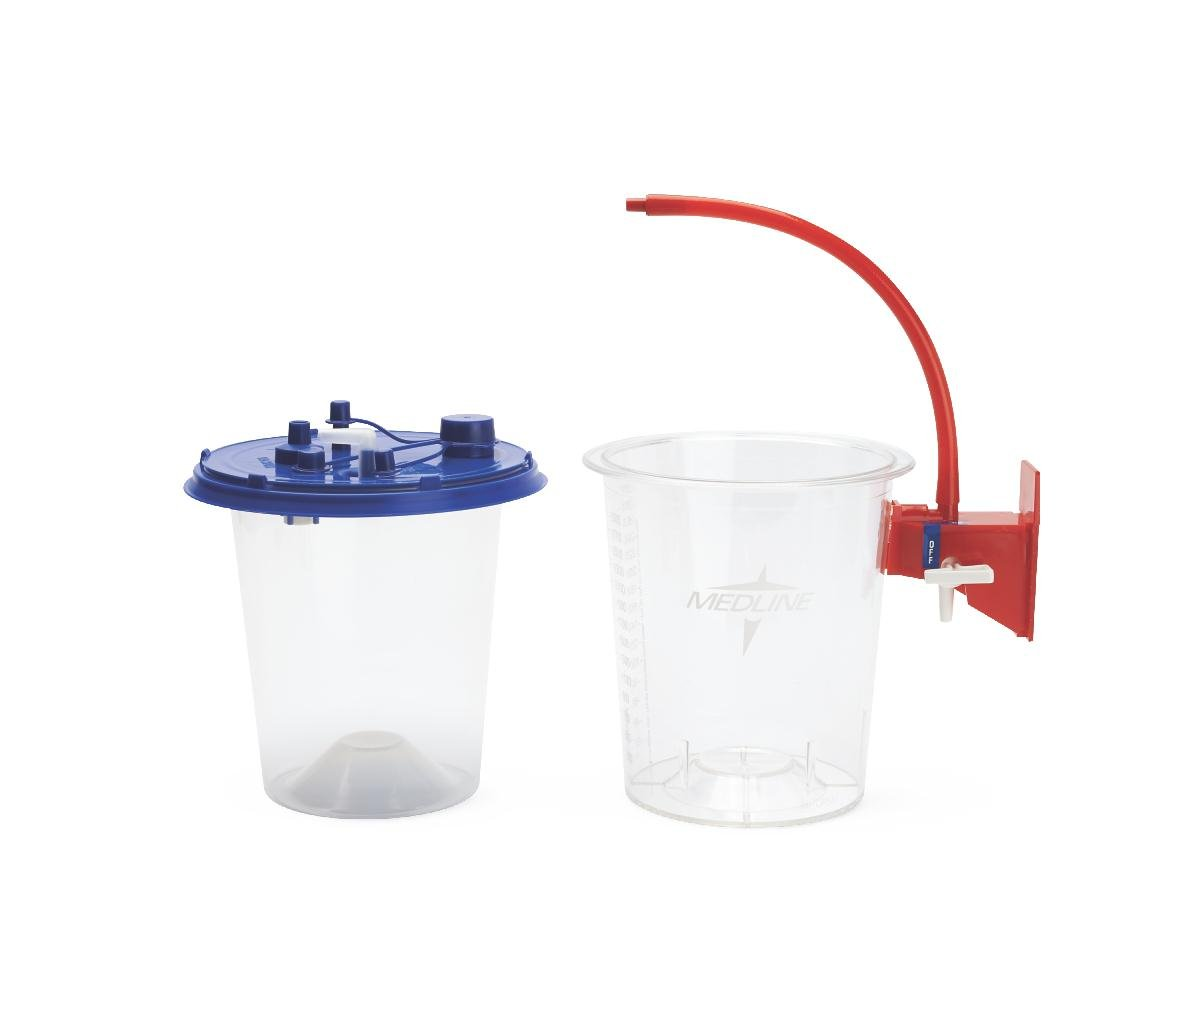 Medline OR515 Suction Canister Semi-Rigid Liners, 1500 cc Canister Size (Pack of 100) by Medline